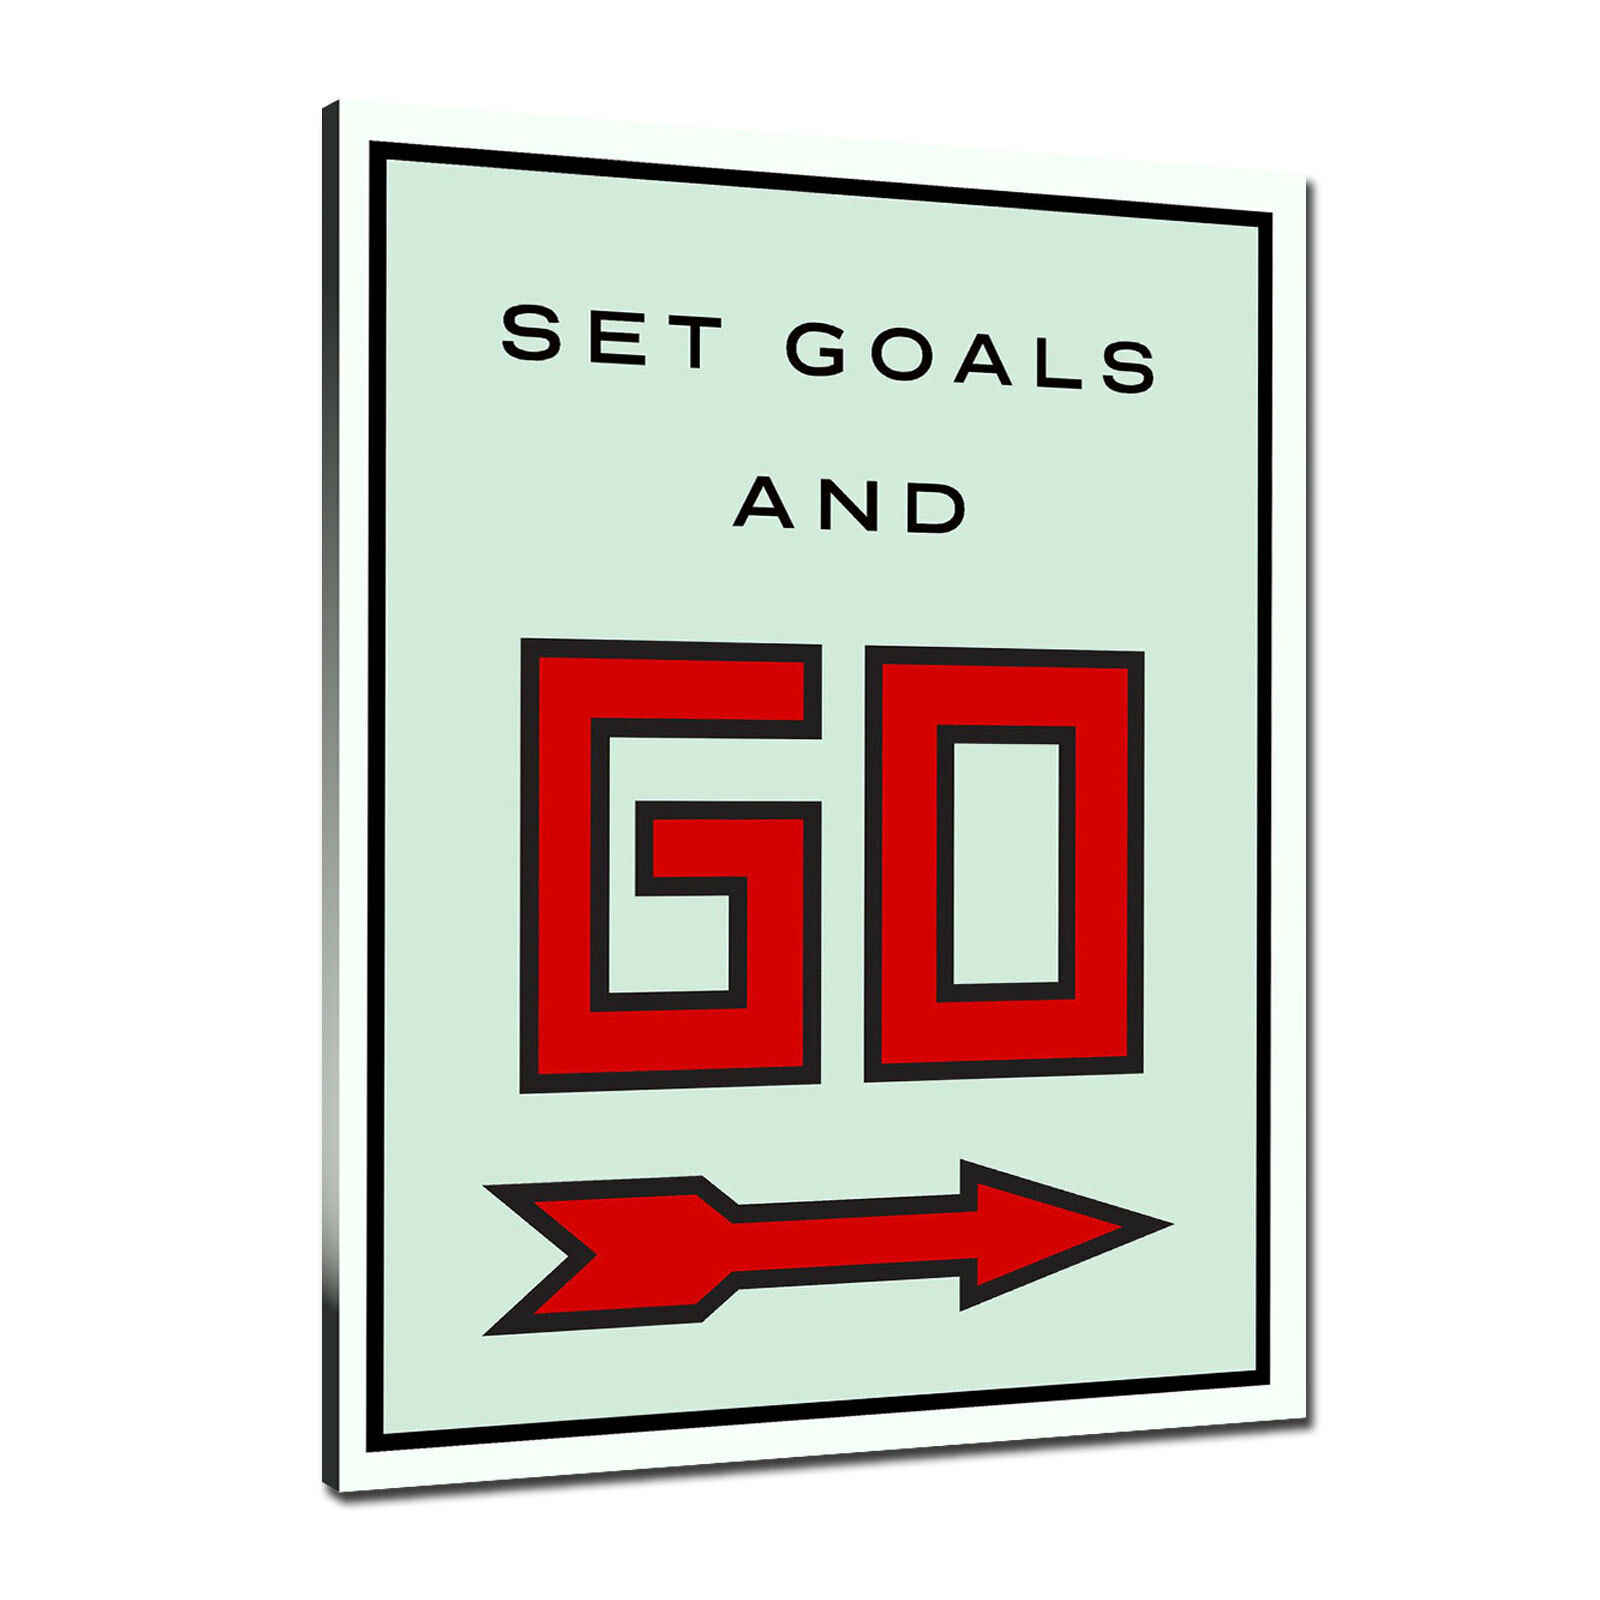 Alec Monopolys Set Goals And Go Abstract Wall Art Oil Painting Poster Canvas Painting Print Pictures for Living Room Home Decor